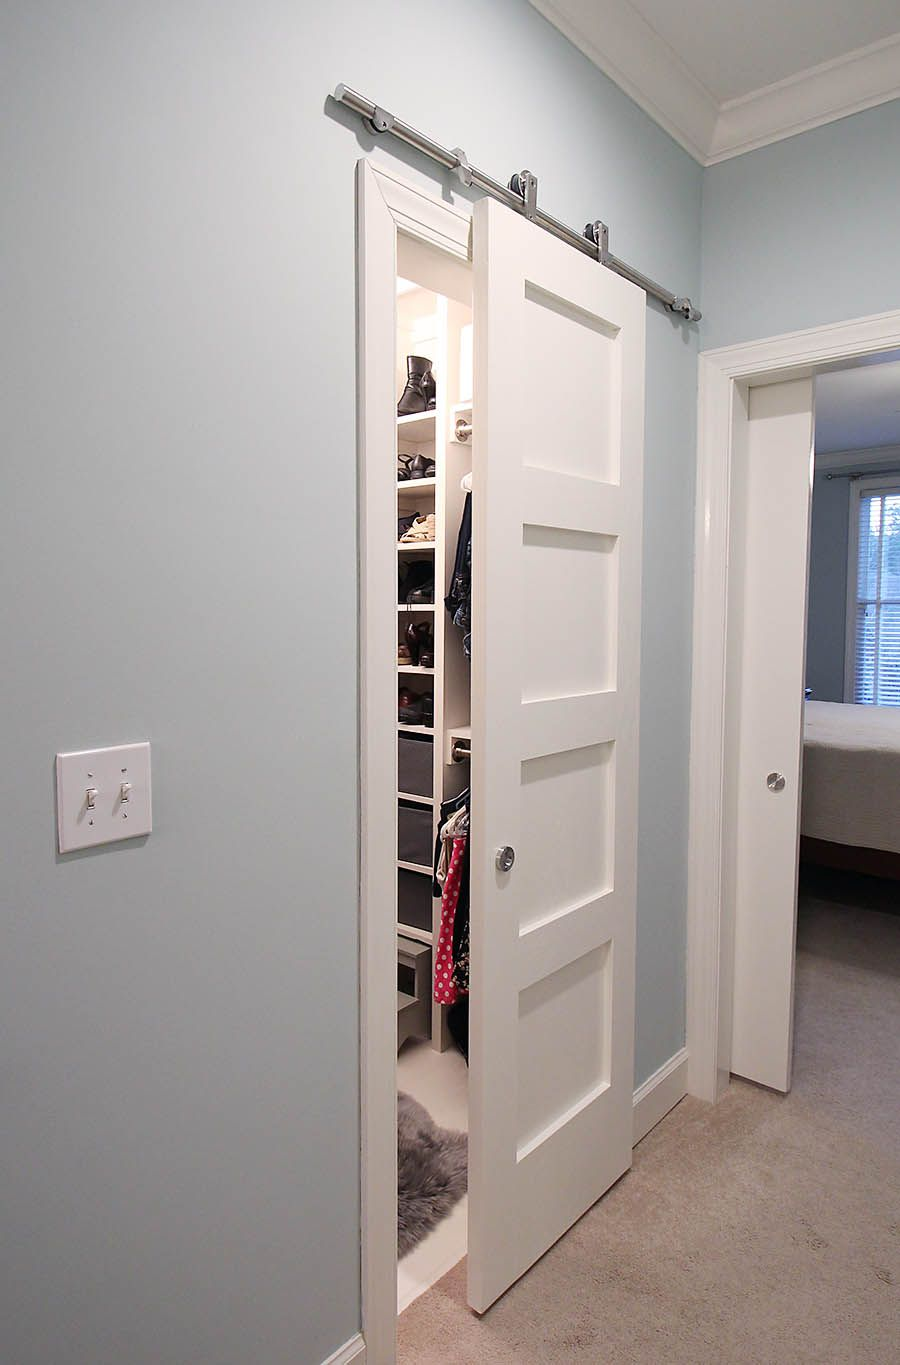 Build it: Contemporary 4-Panel Barn Door for $50 | Innentüren ...